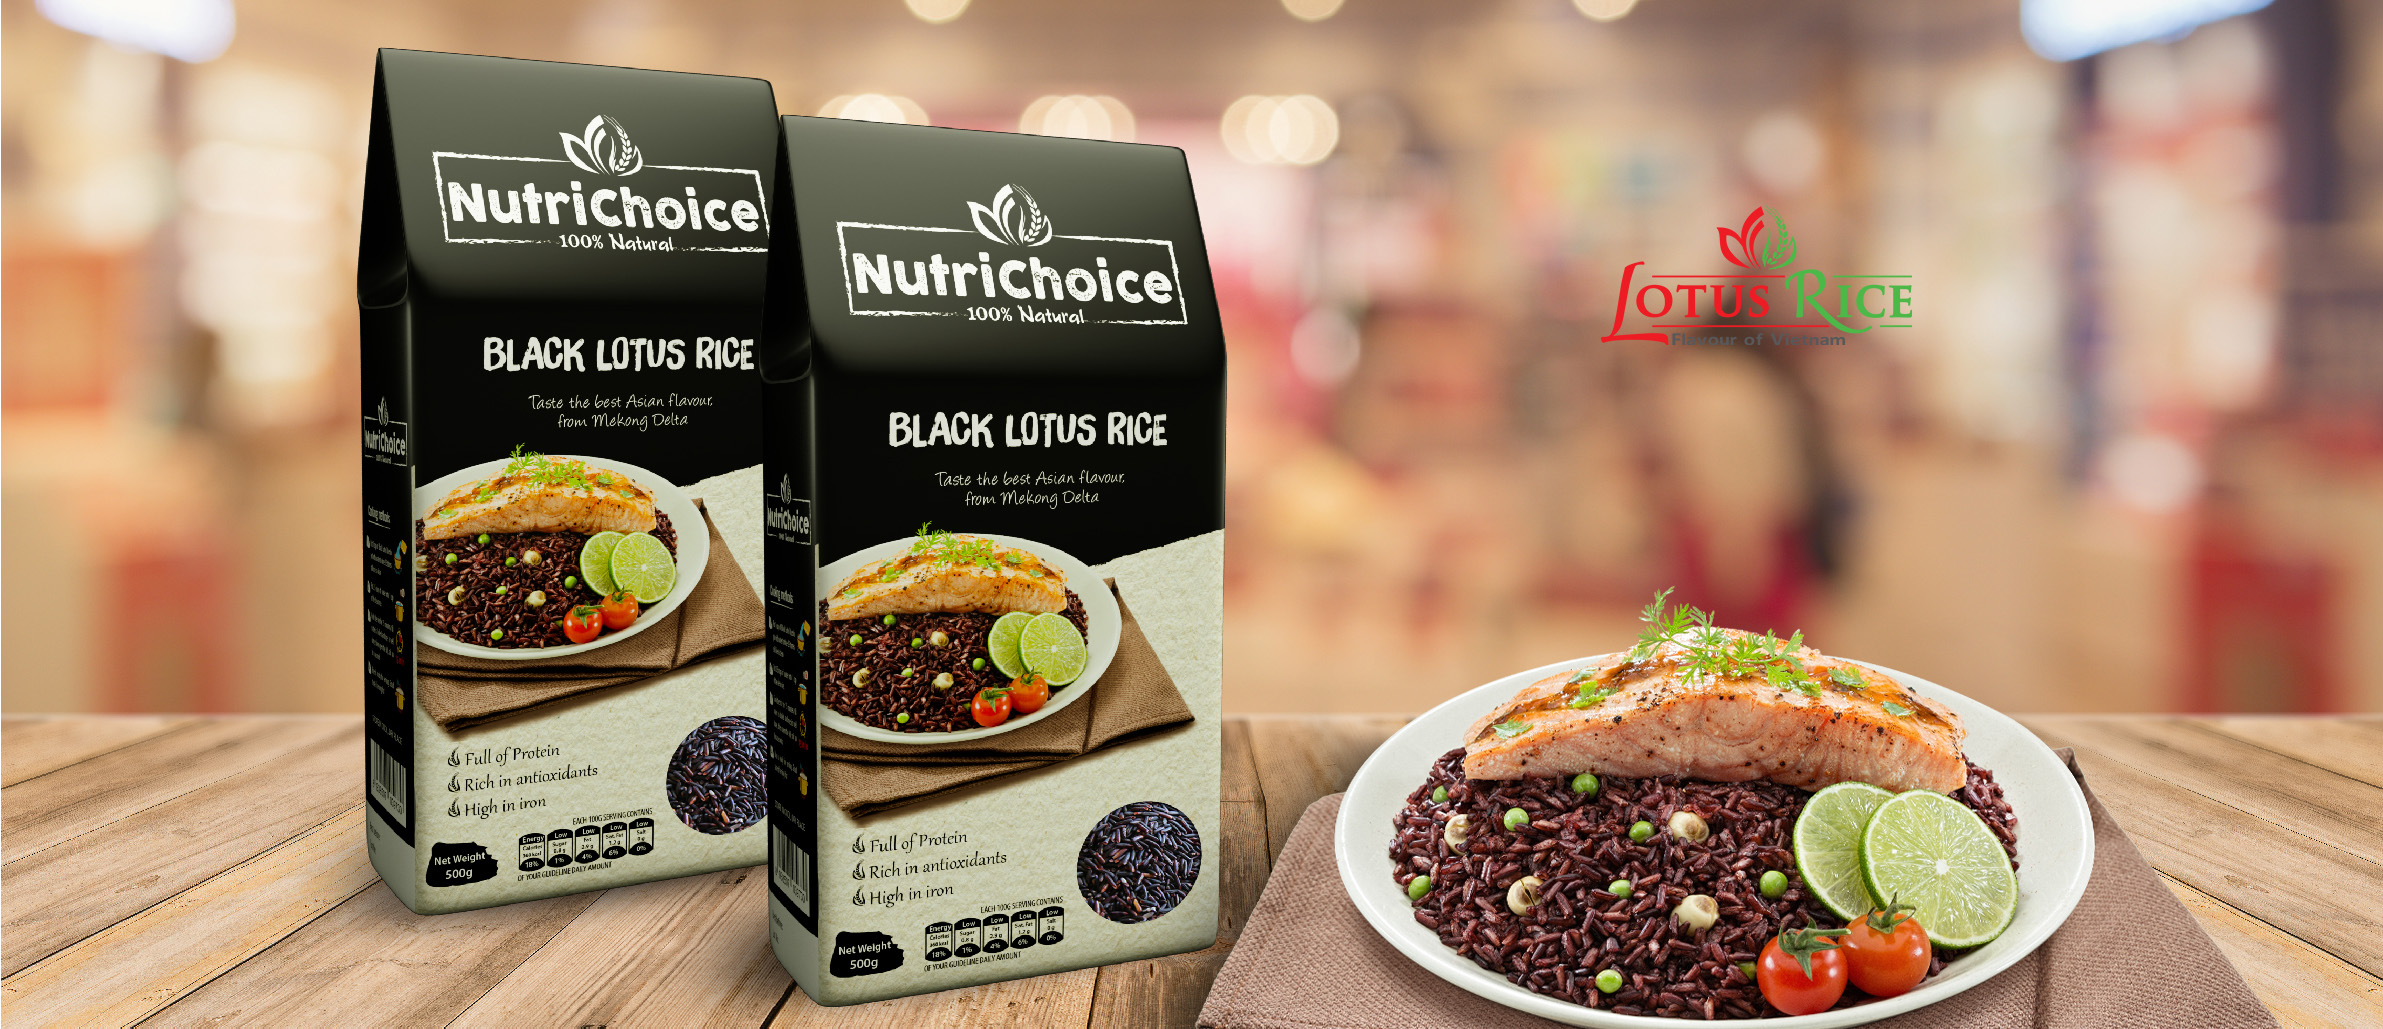 BLACK LOTUS RICE RECIPE